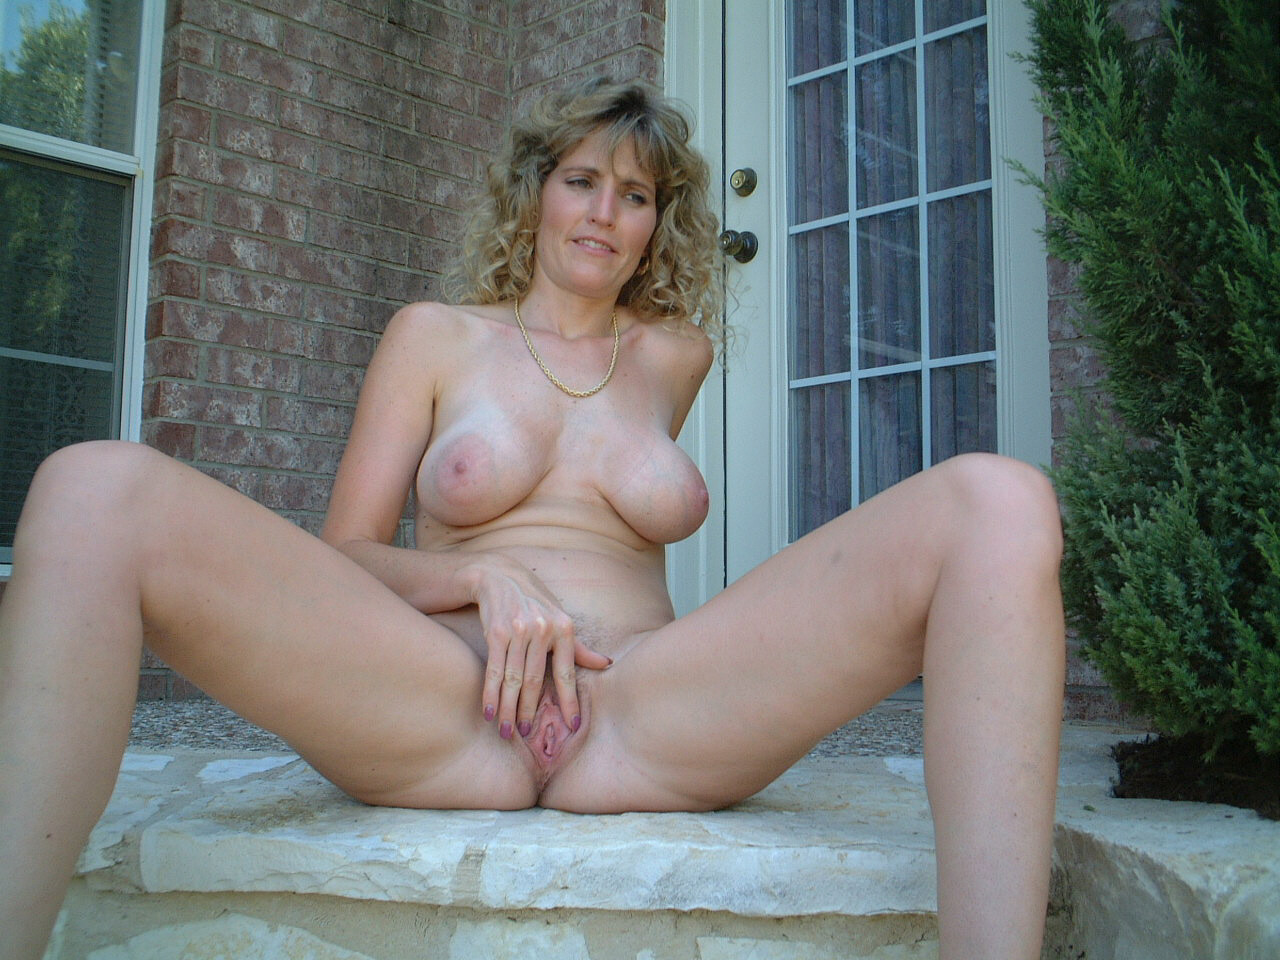 Realize, told... mature amateur wives nude